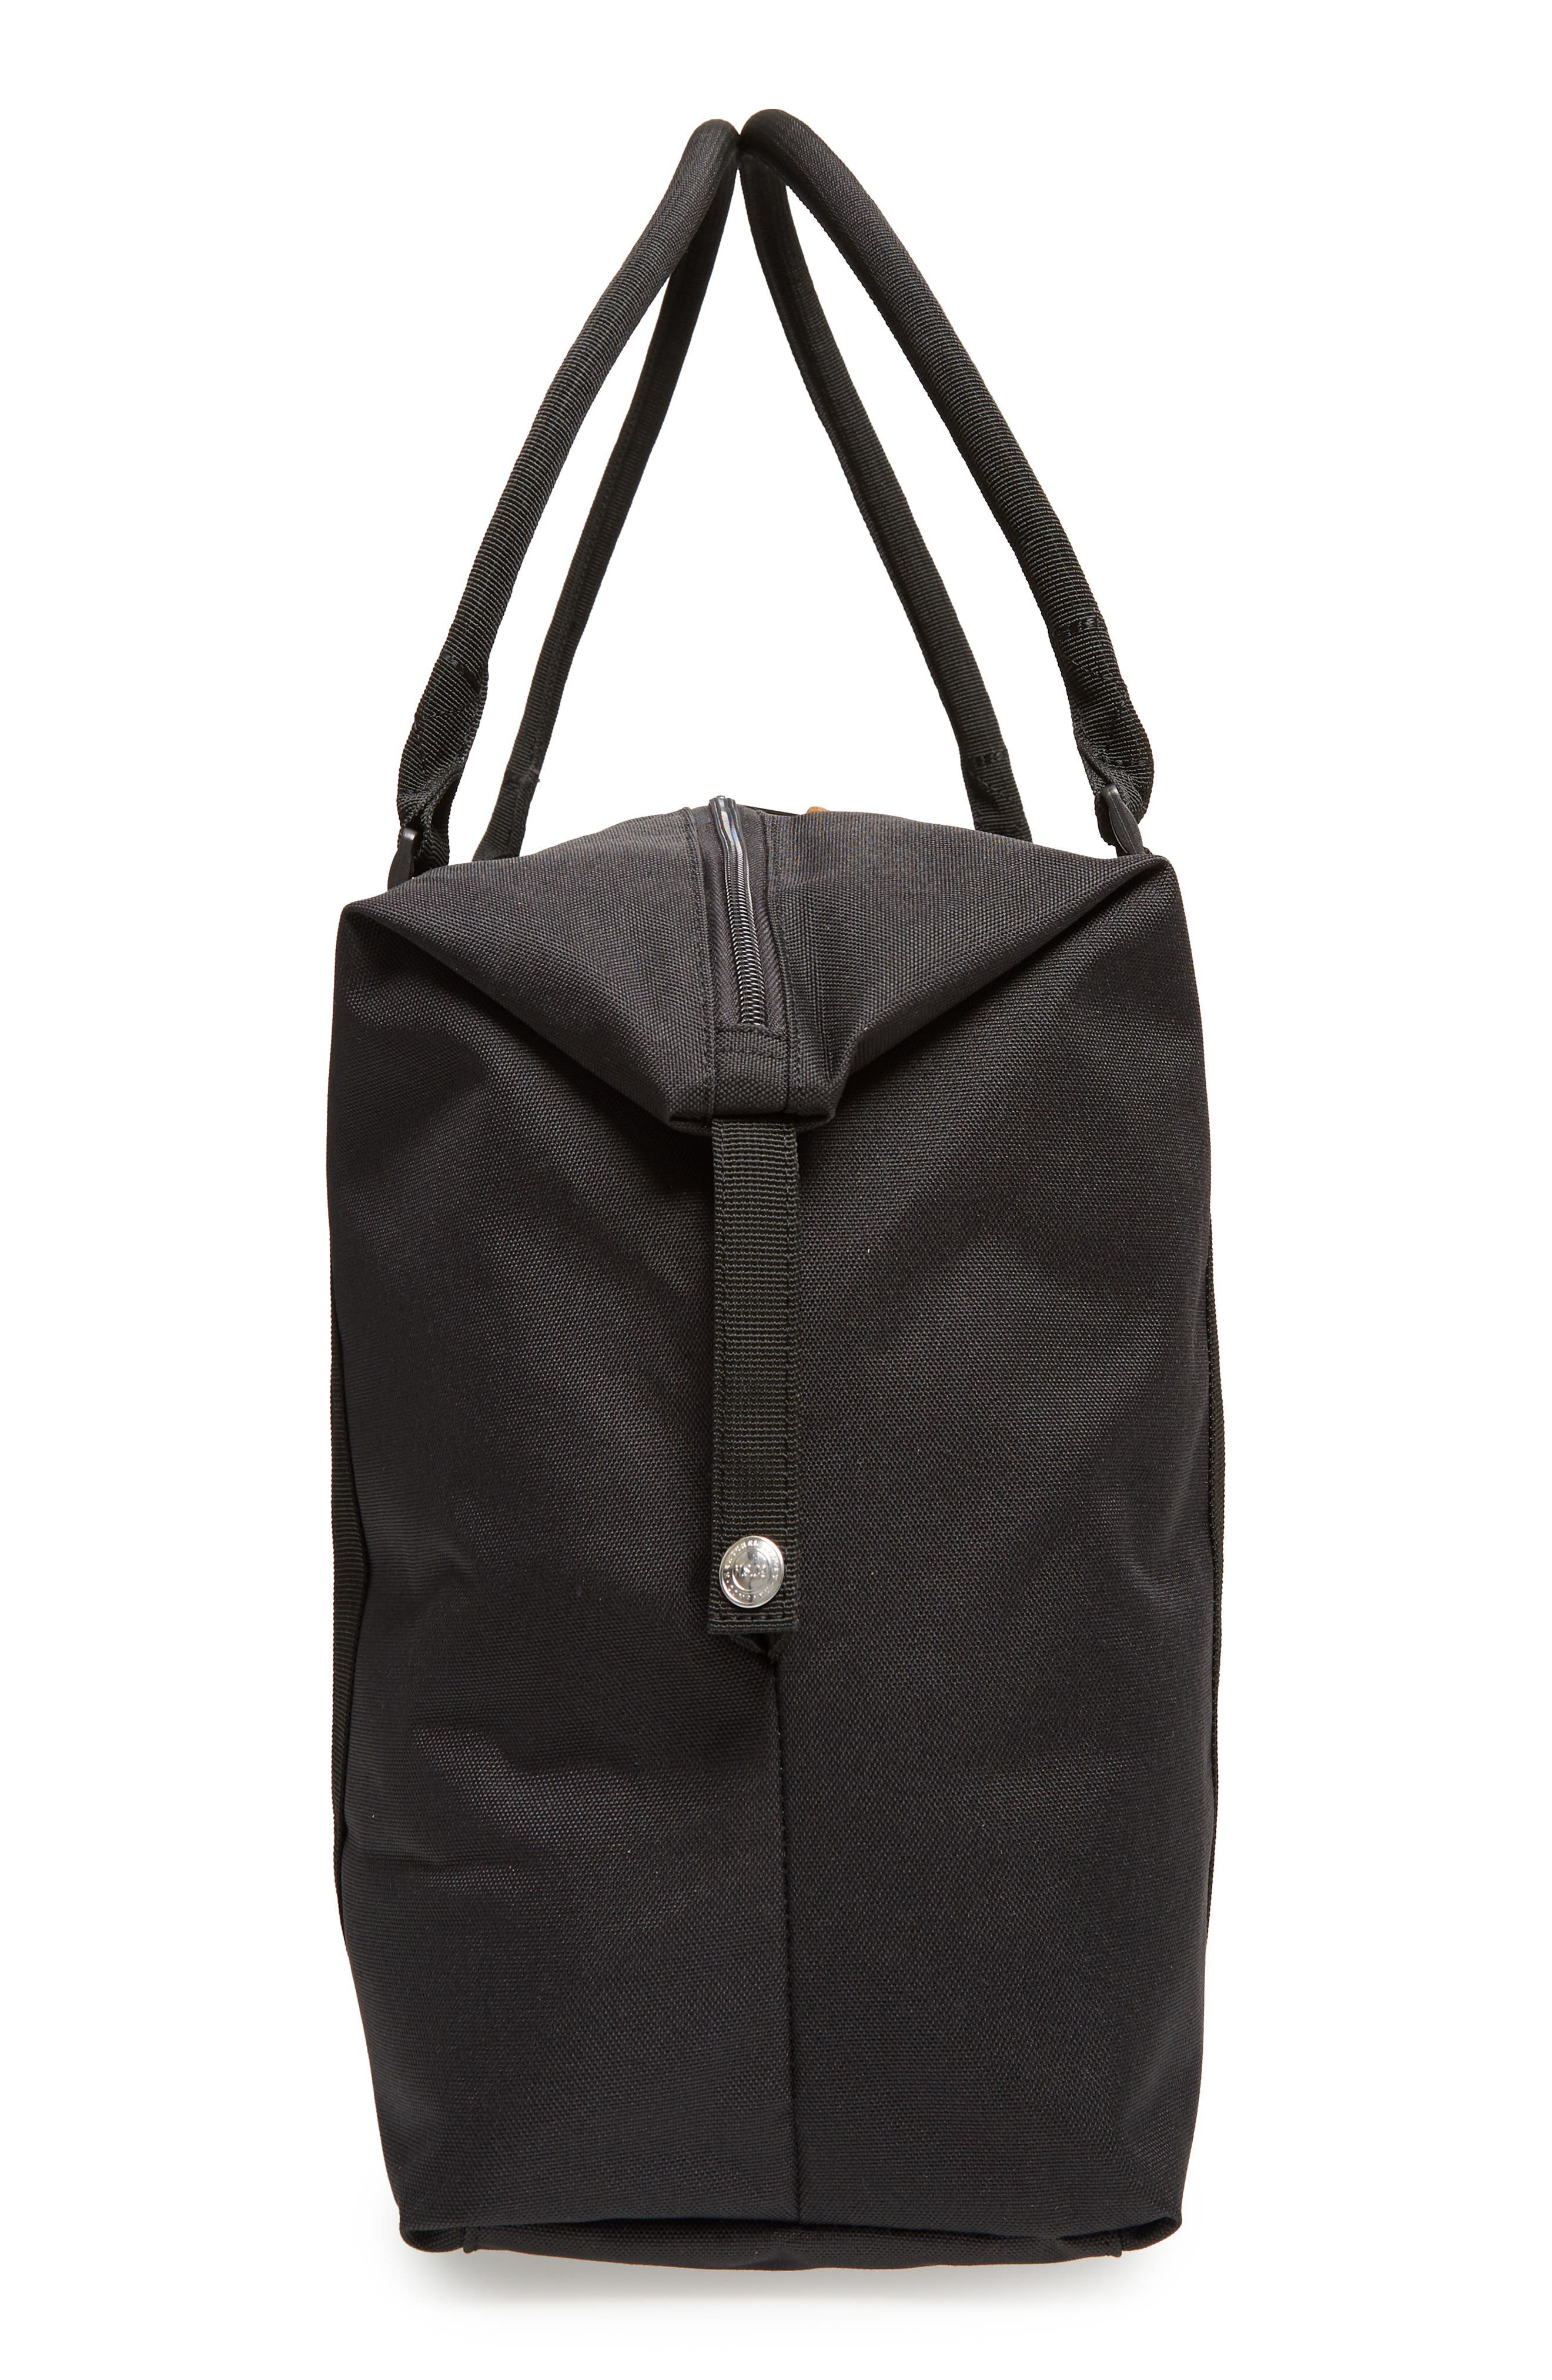 Strand Duffel Bag,                             Alternate thumbnail 5, color,                             001